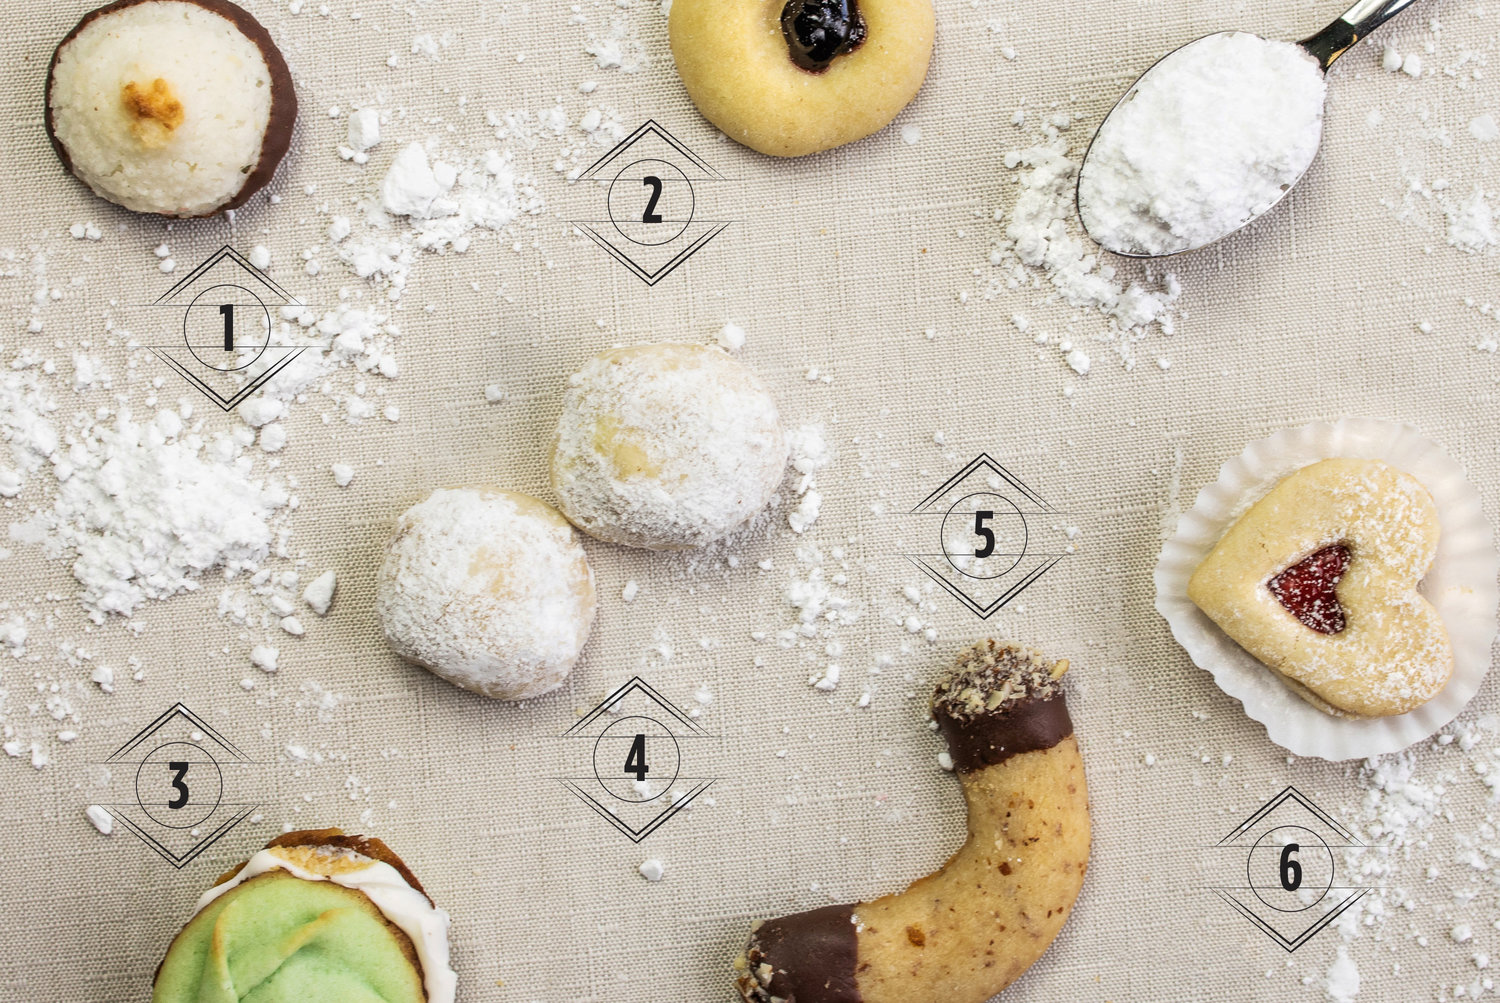 1. Coconut Macaroon |  2. Jelly Thumbprint  |  3. Pistachio Spritz Cookie  |  4. Butterball Cookie  |  5. Almond Crescent  |  6. Linzer Heart